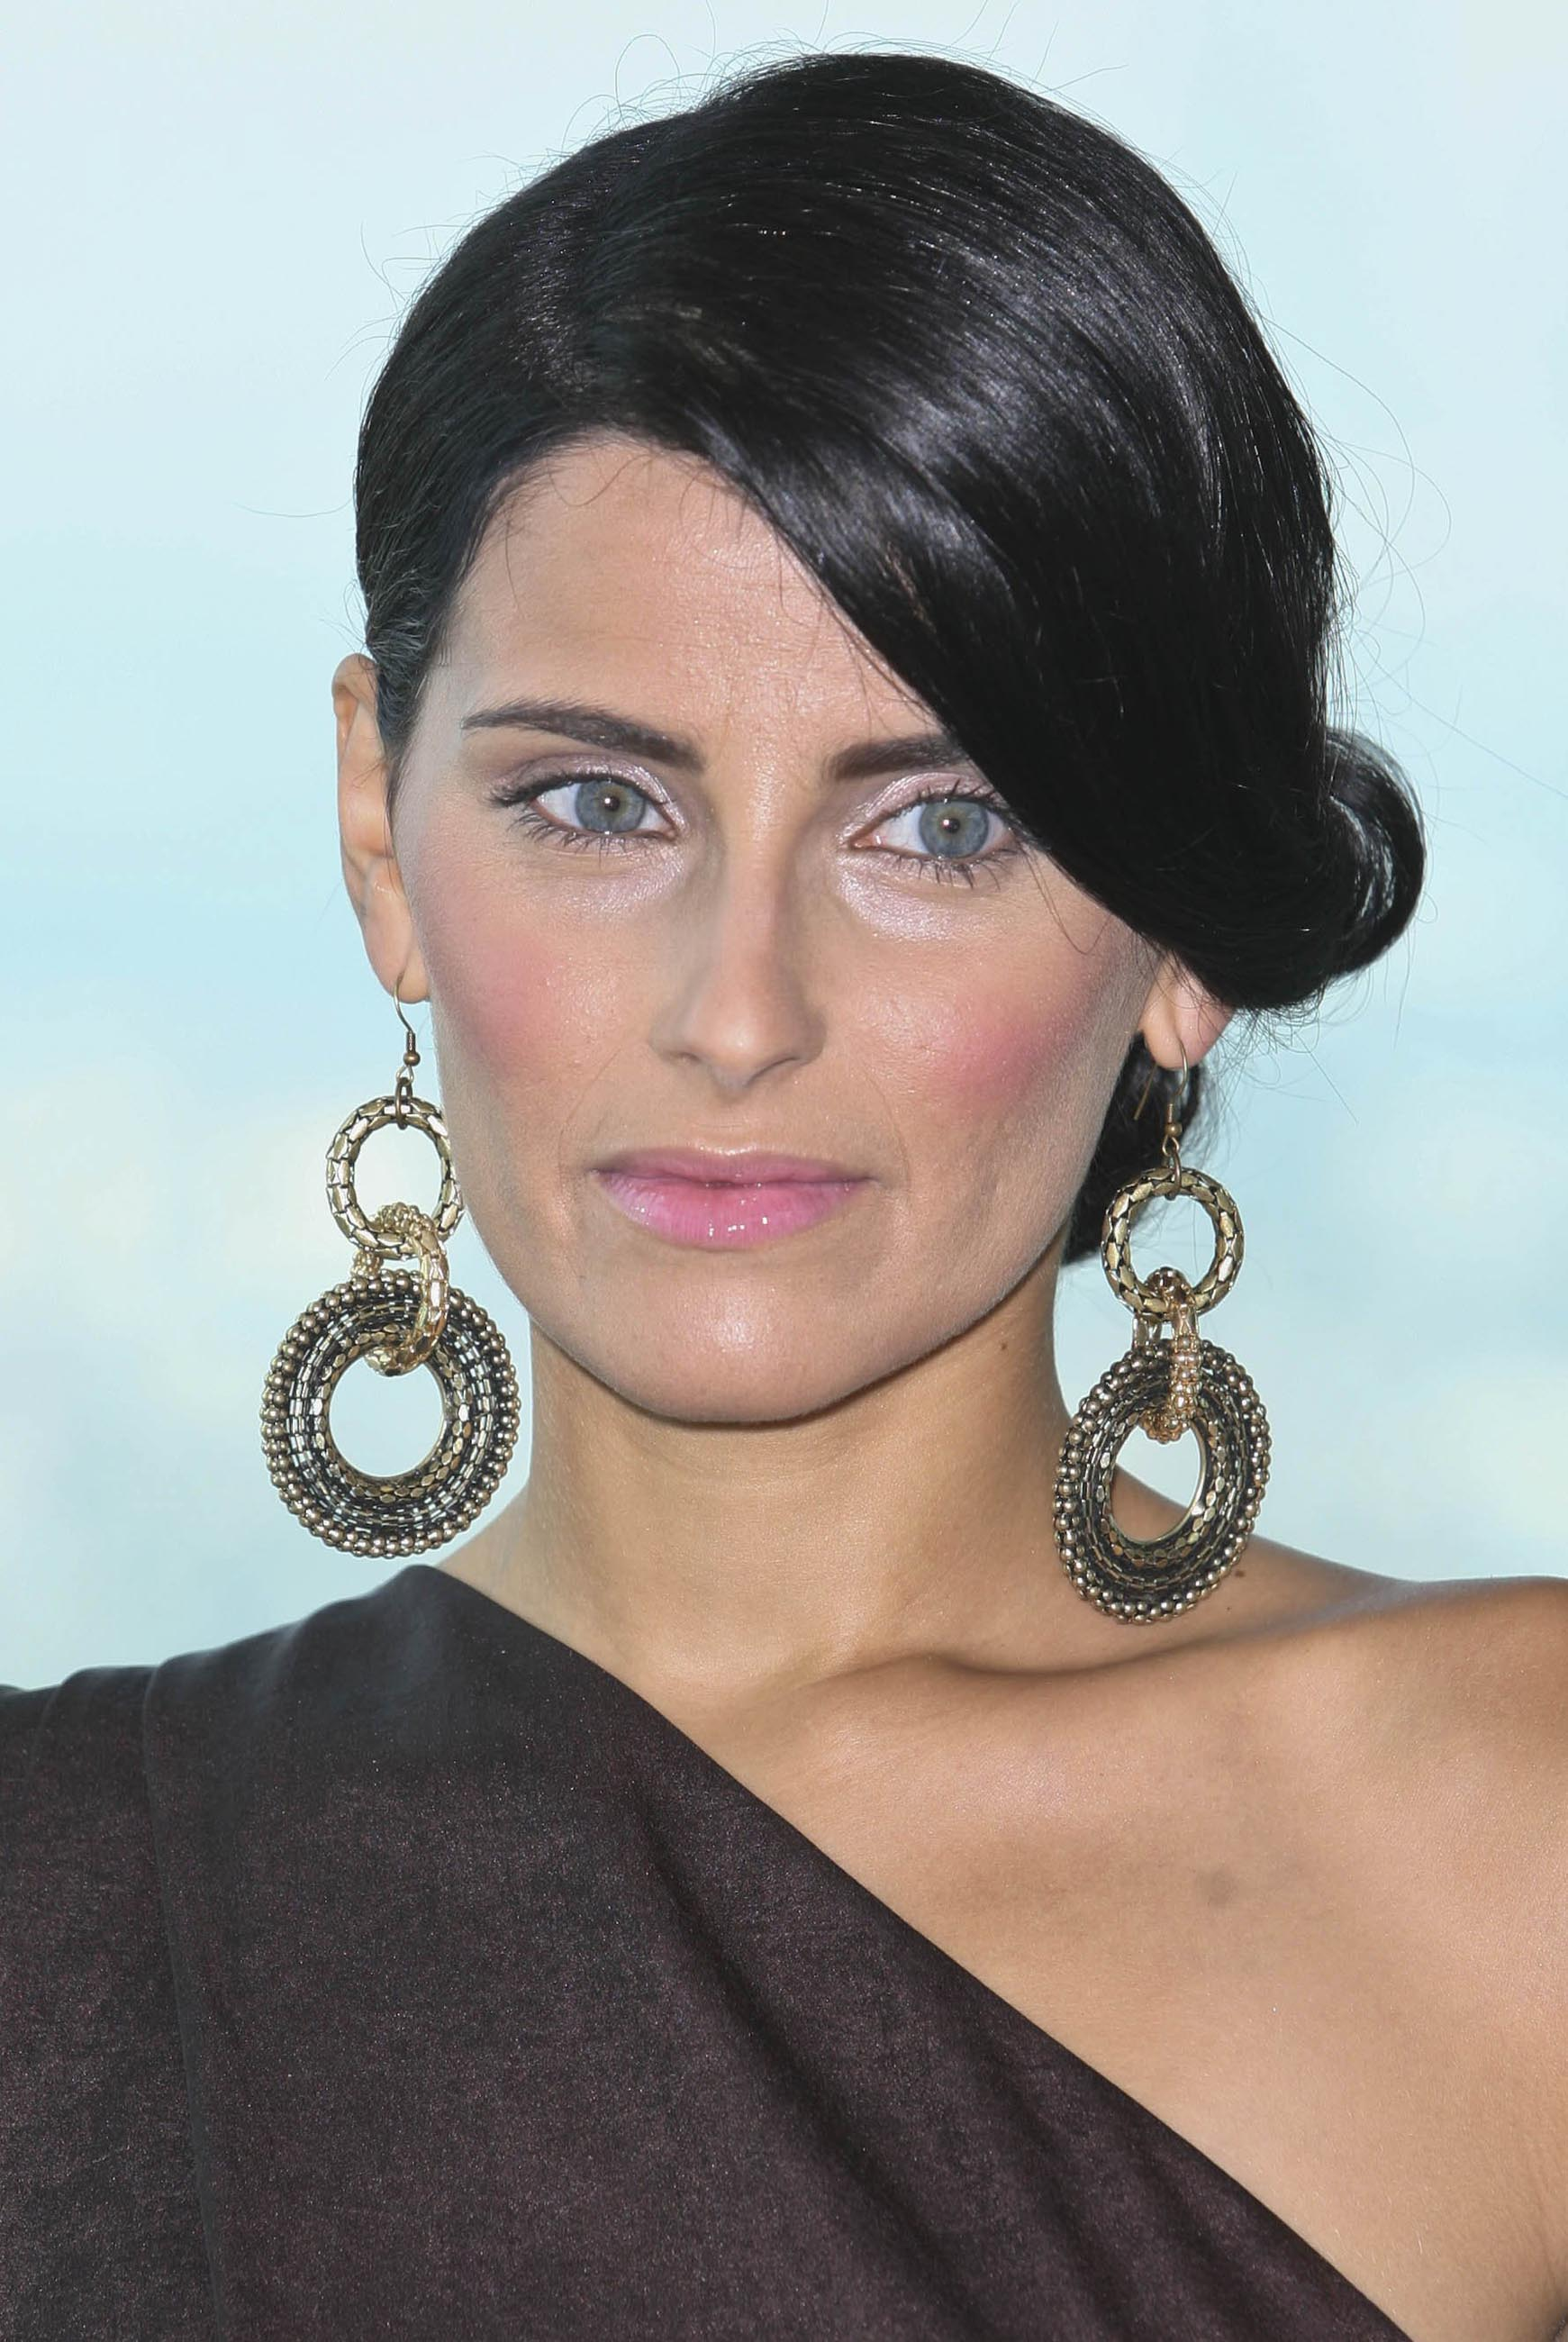 Nelly furtado photo, pics, wallpaper - photo #281718.